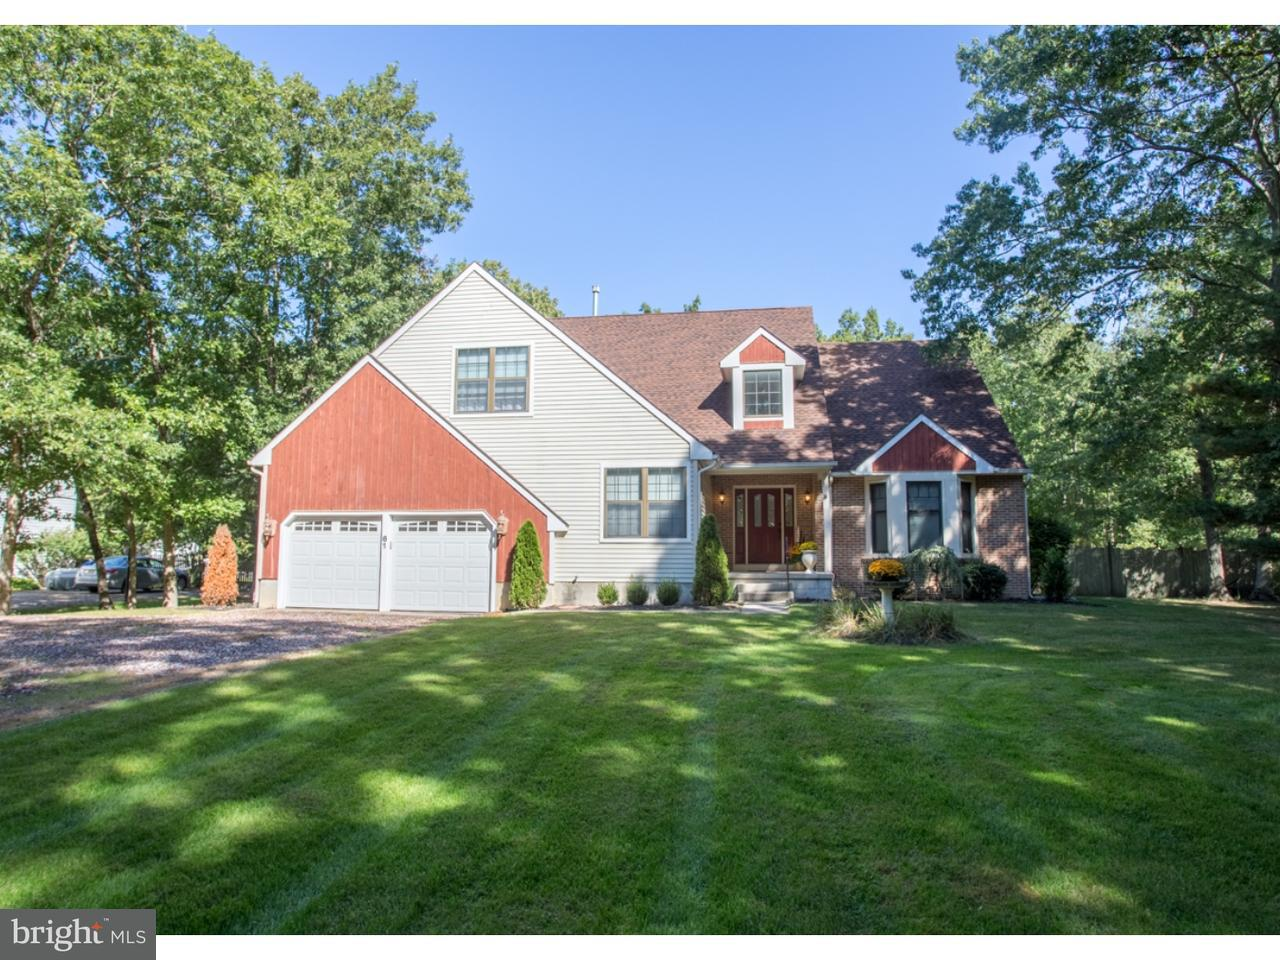 Single Family Home for Sale at 61 E FLEMING PIKE Winslow, New Jersey 08037 United States